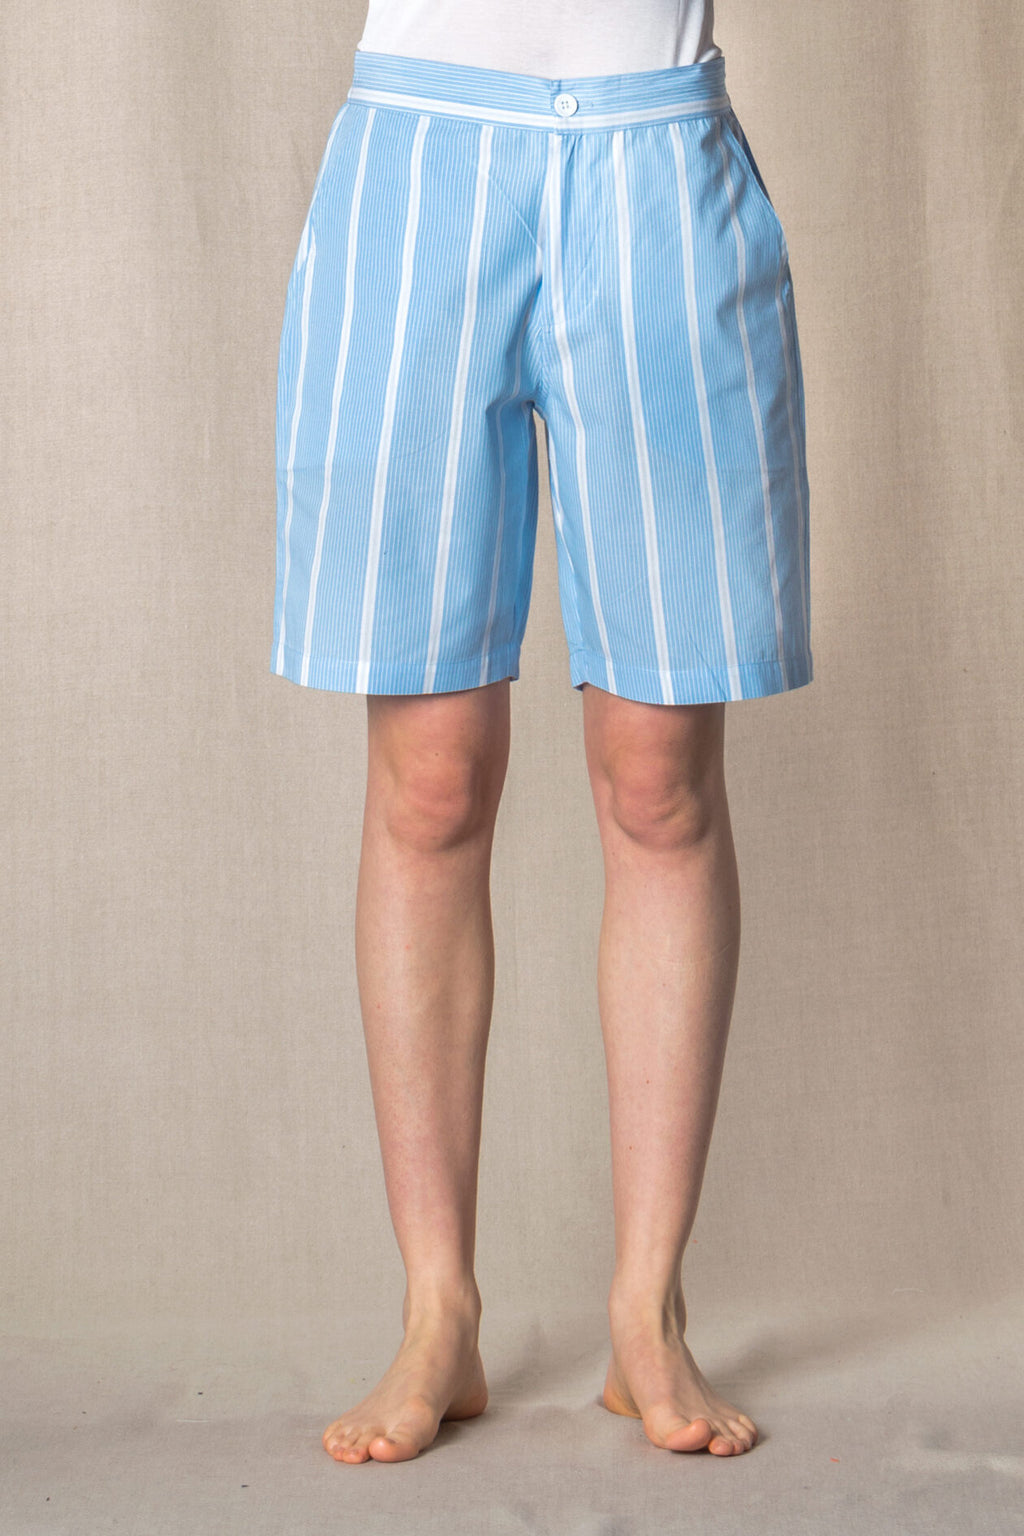 please buy this at : MATCHES FASHION : SHORTS College-S-Stripes & Piping       100%ᴾᵁᴿᴱ COTTON popeline       BLUE-Ice       Paris 1924 Olympics